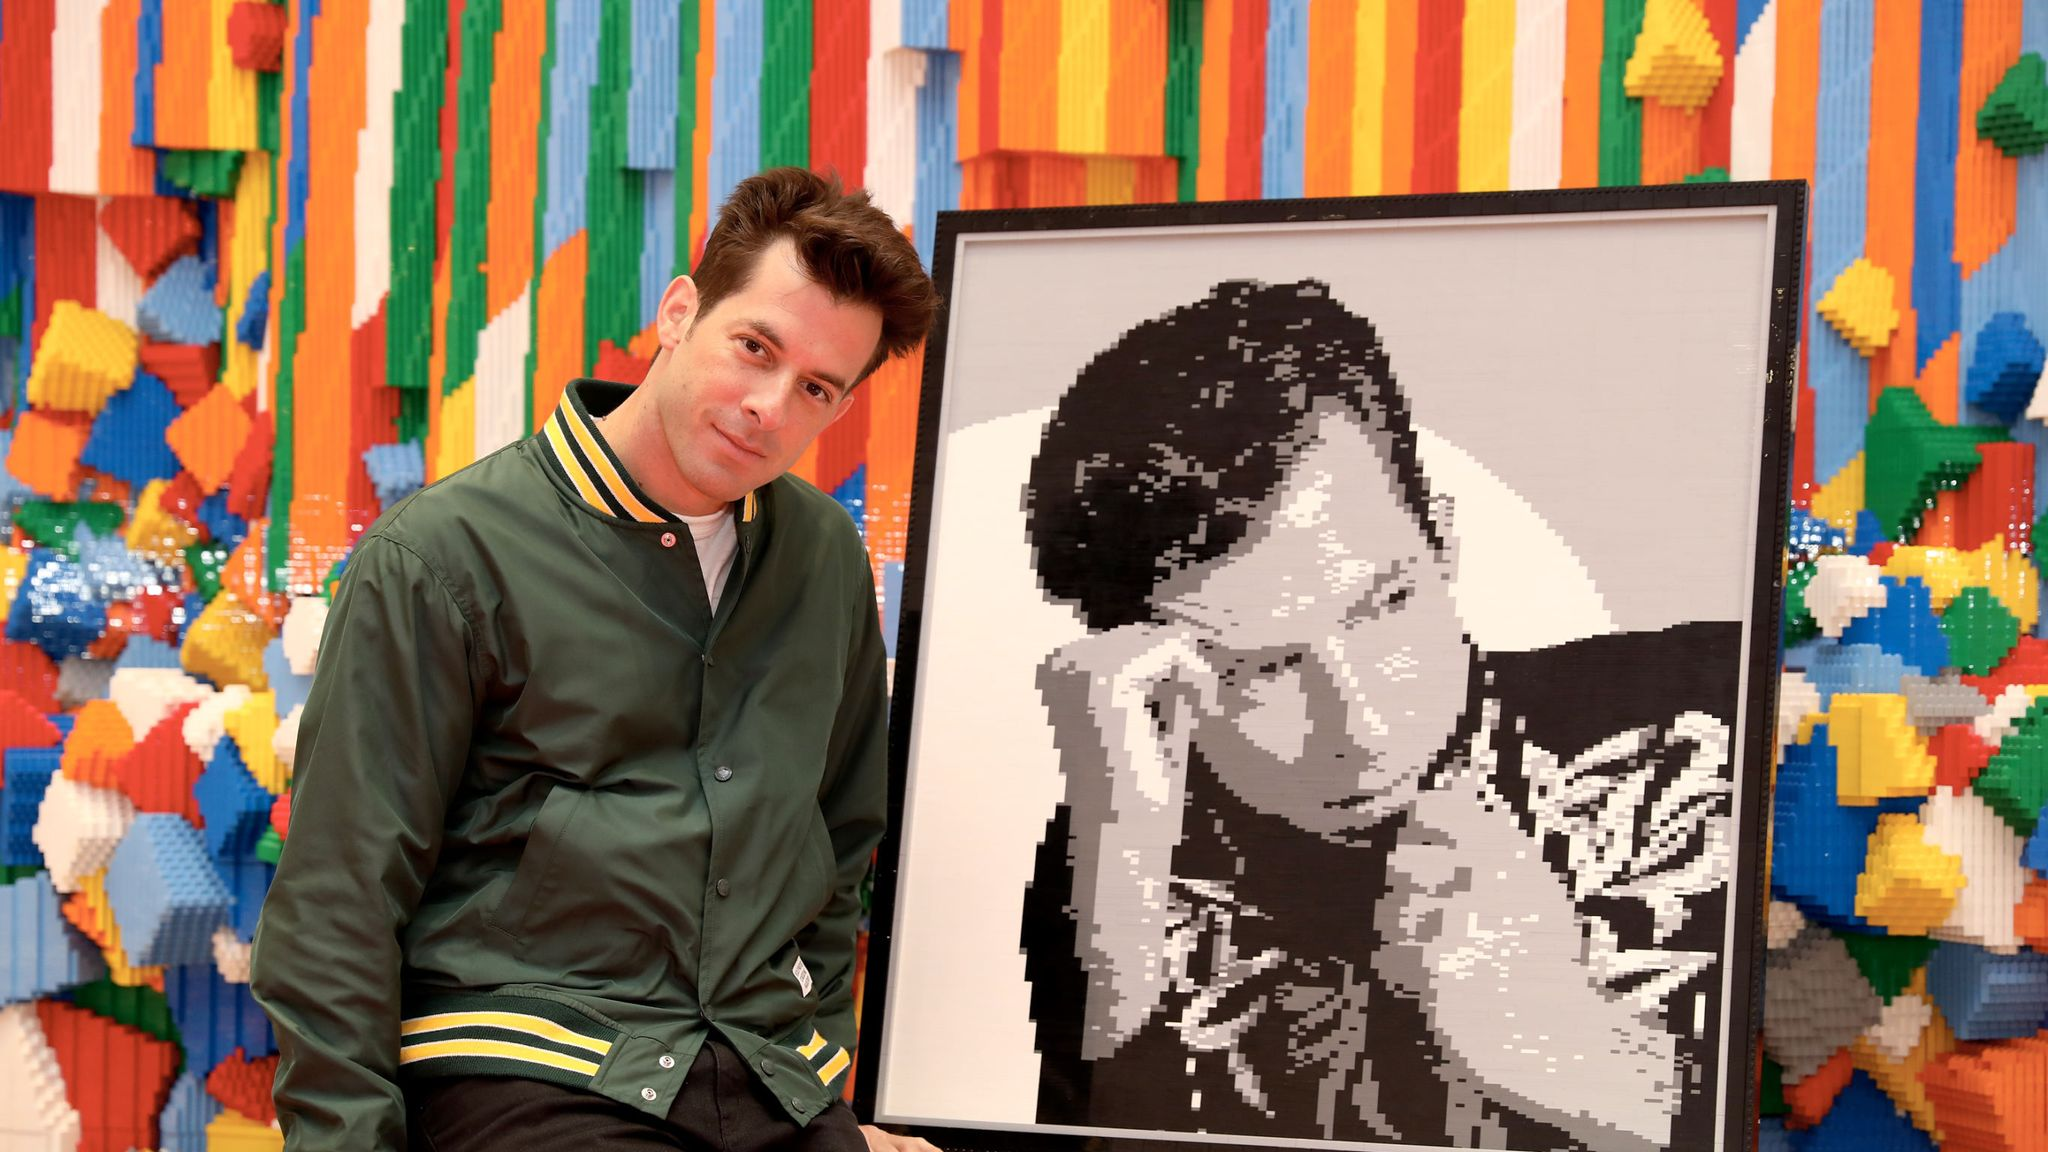 Mark Ronson: Why we should listen to albums in full